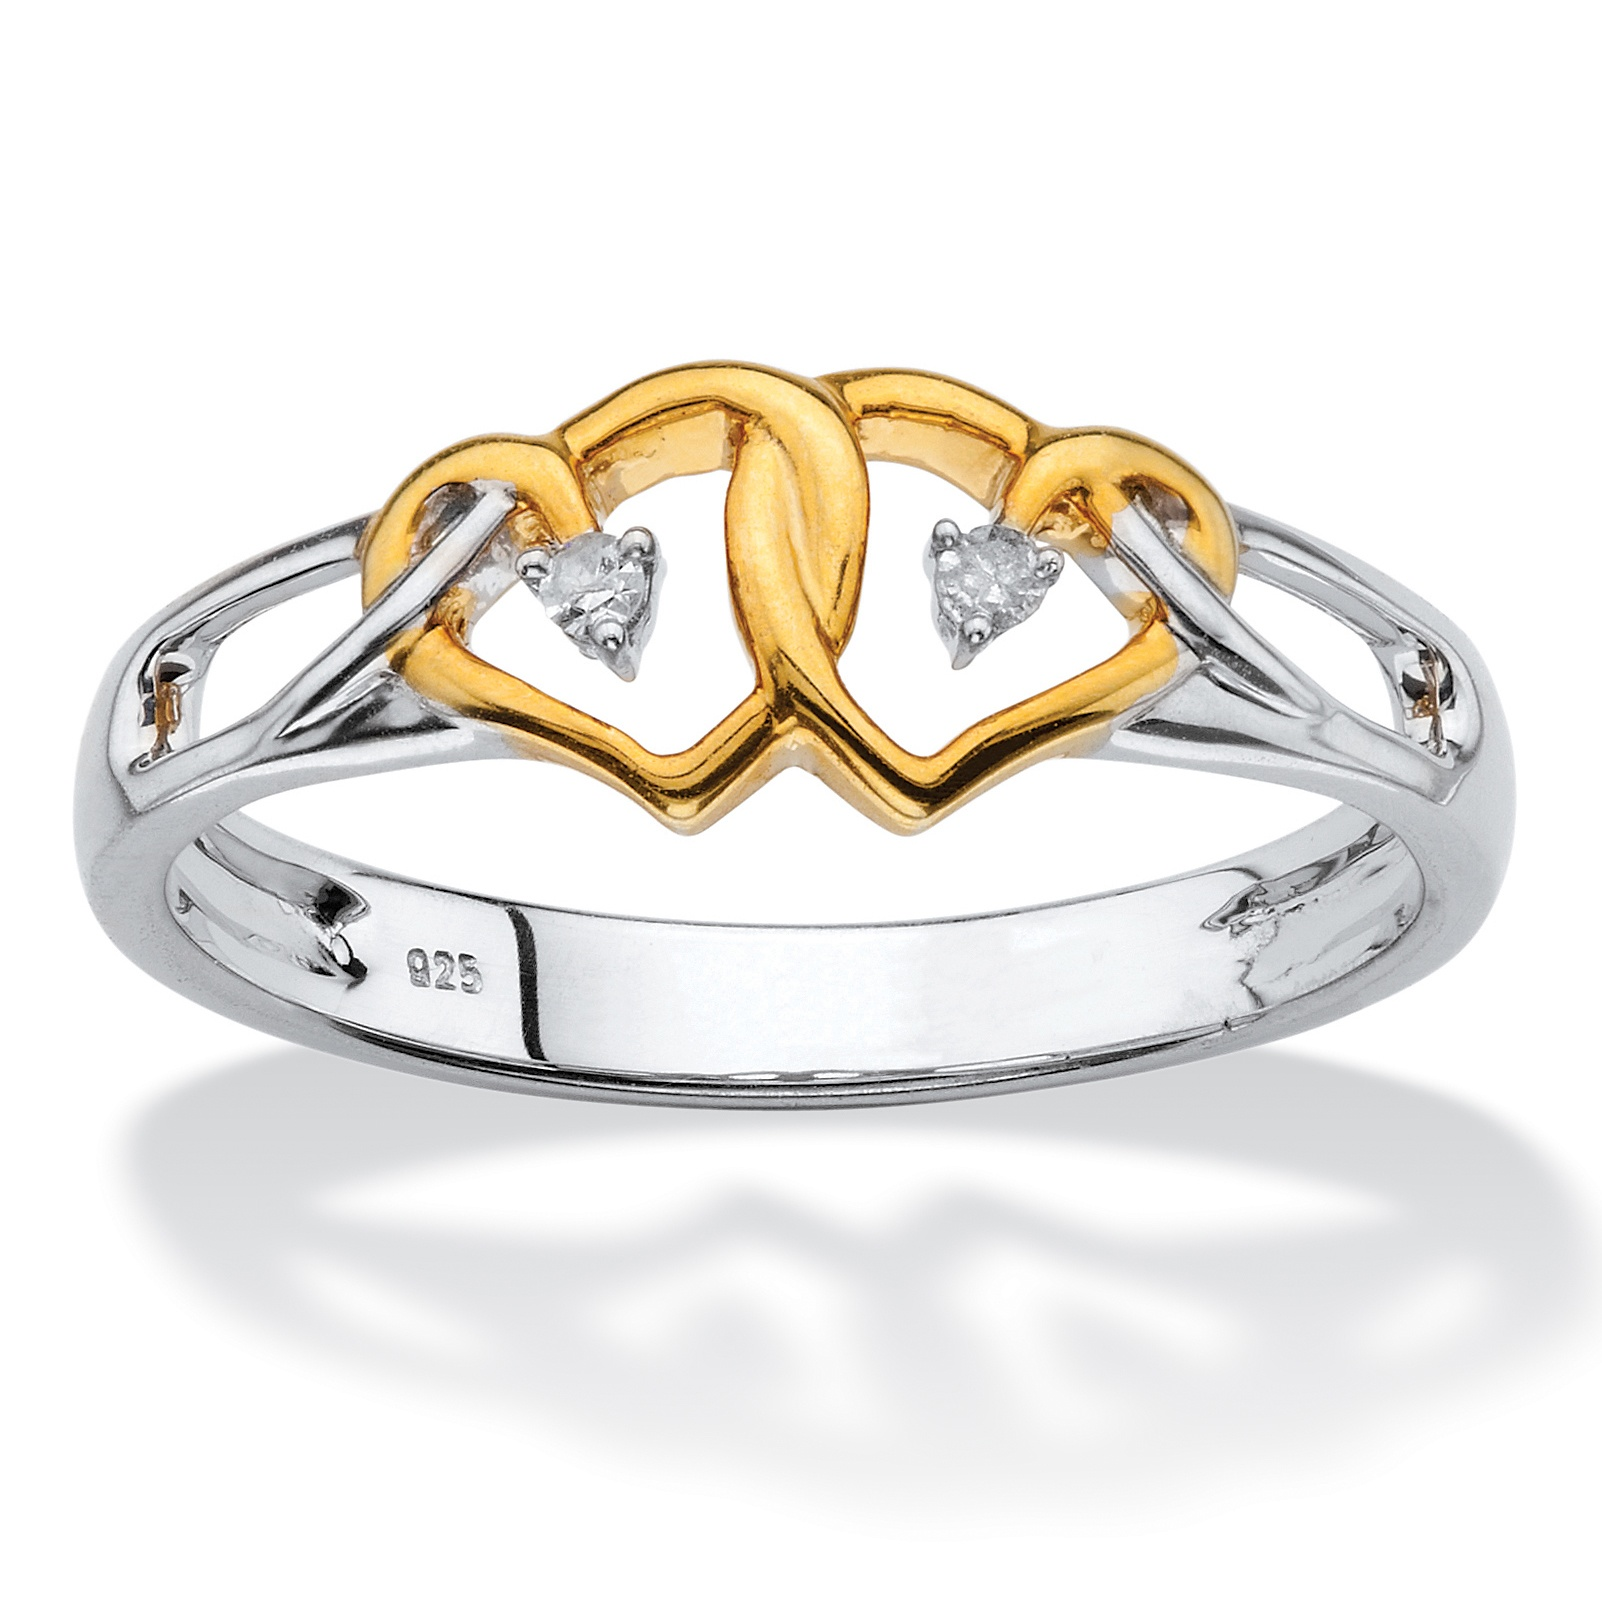 Diamond Accent Two-Tone Double Heart Ring in 14k Yellow Gold over Sterling Silver